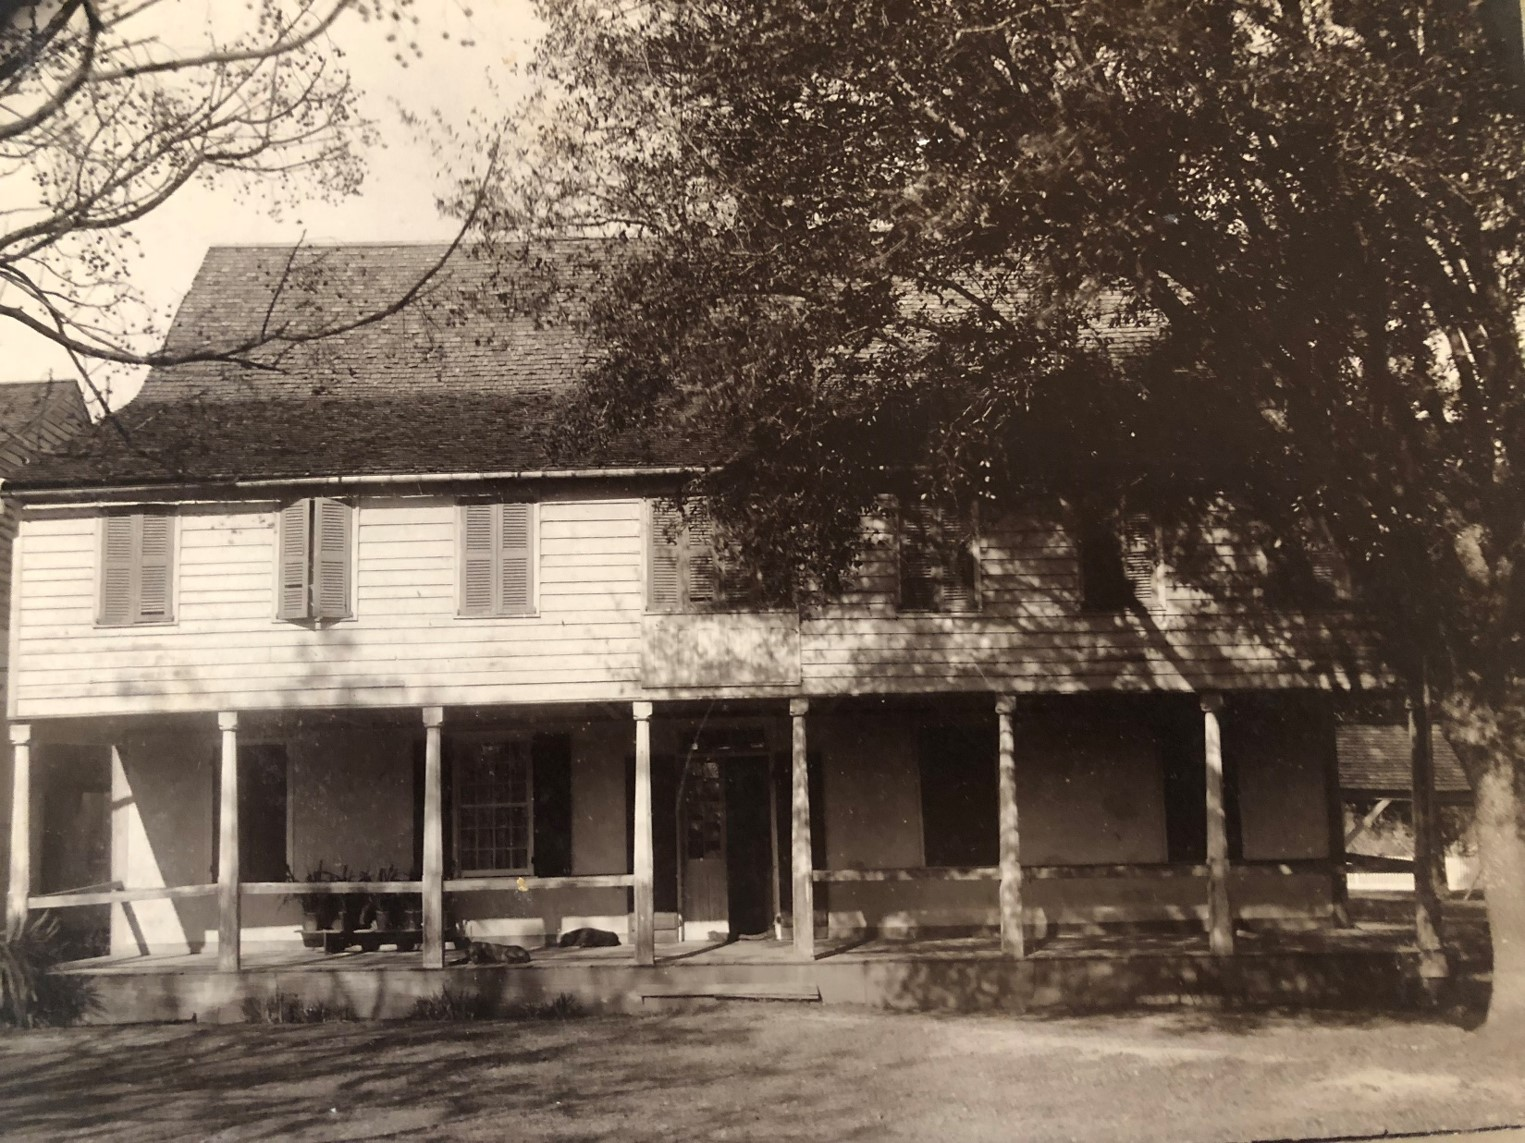 The original house donated by Mrs. Smith served as a school and residence until the 1830s when a new building was constructed. However, this house was still in use when it burned in a fire in 1914.